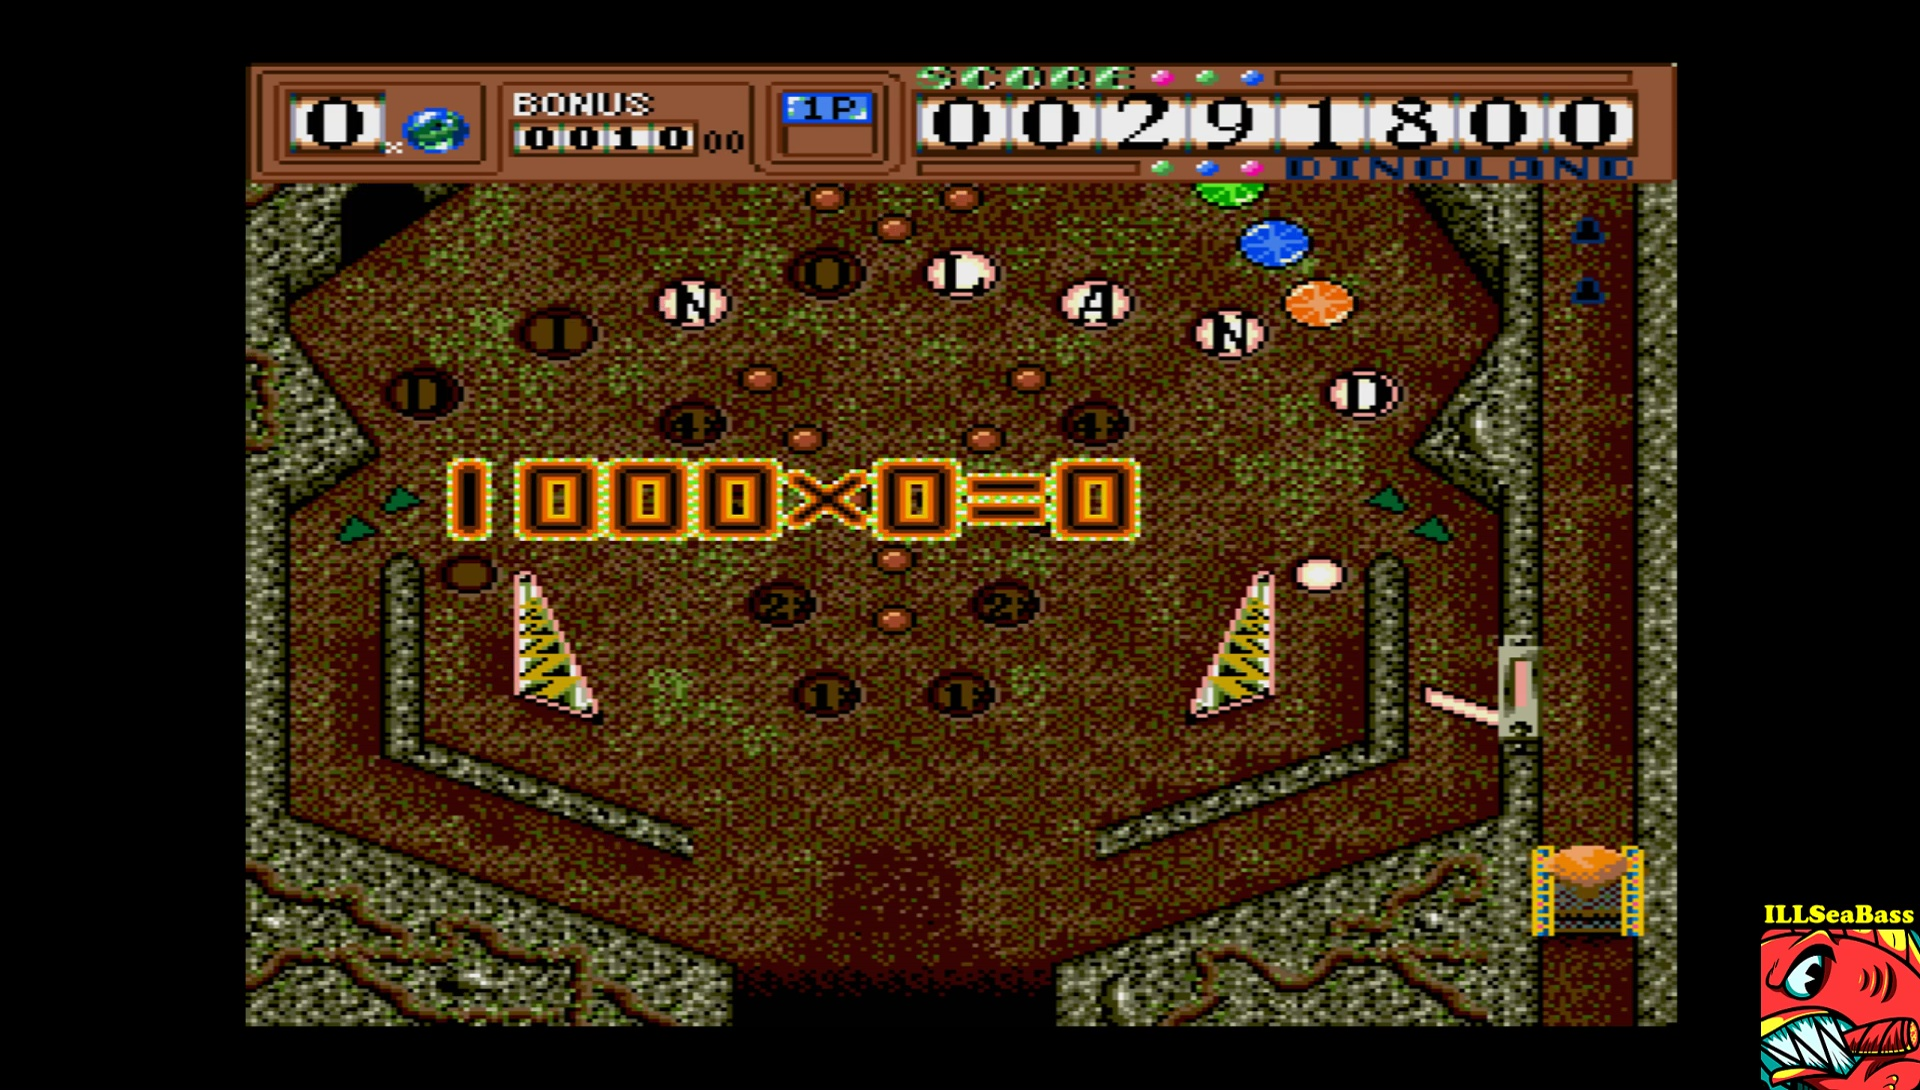 ILLSeaBass: Dino Land (Sharp X68000 Emulated) 291,800 points on 2017-06-25 23:59:05